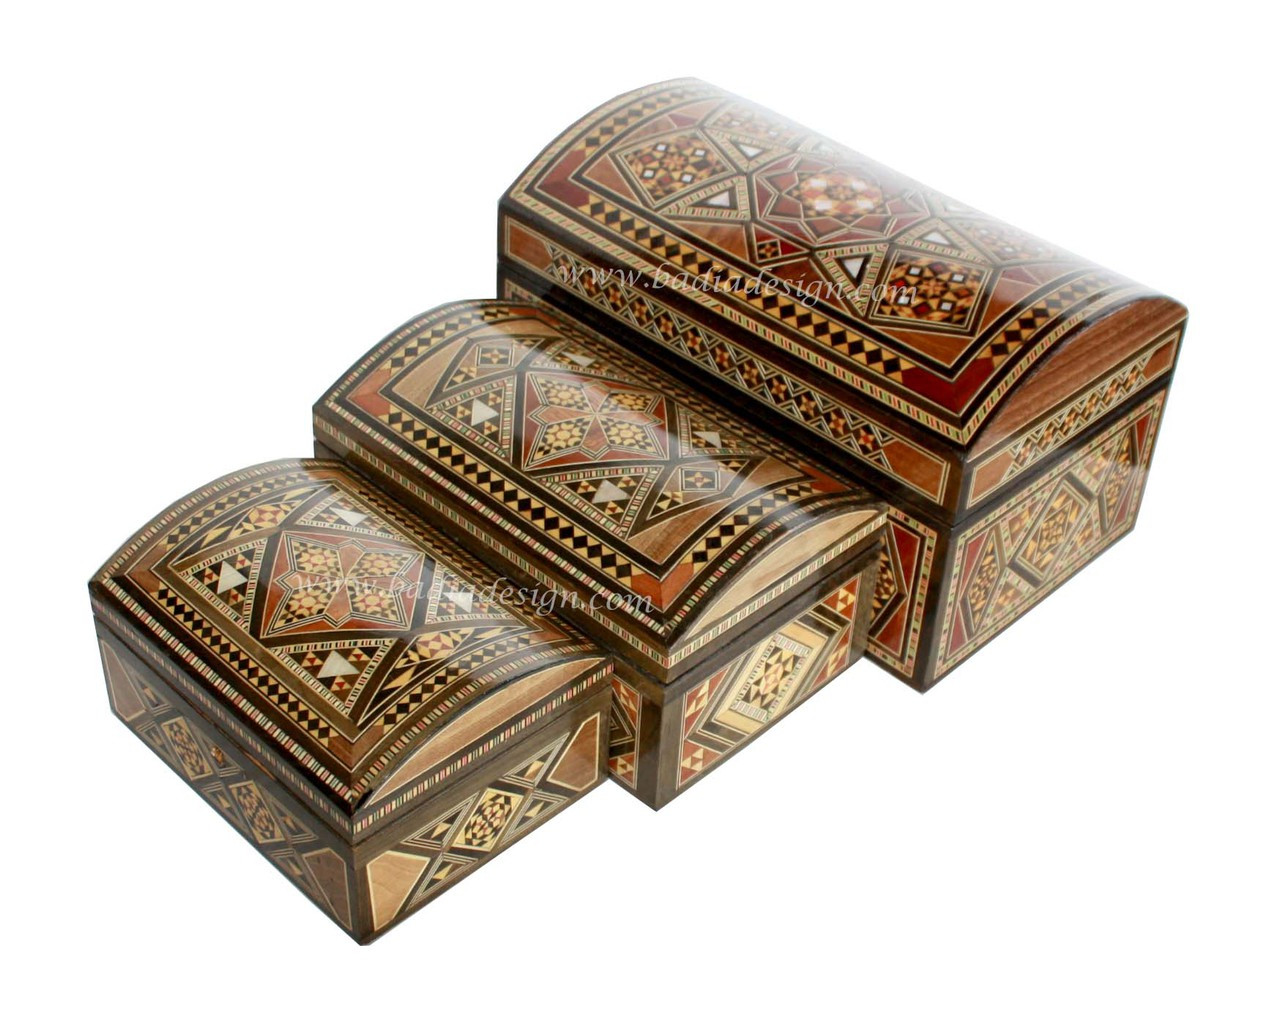 Inlaid Wooden Jewelry Box with a Syrian Design